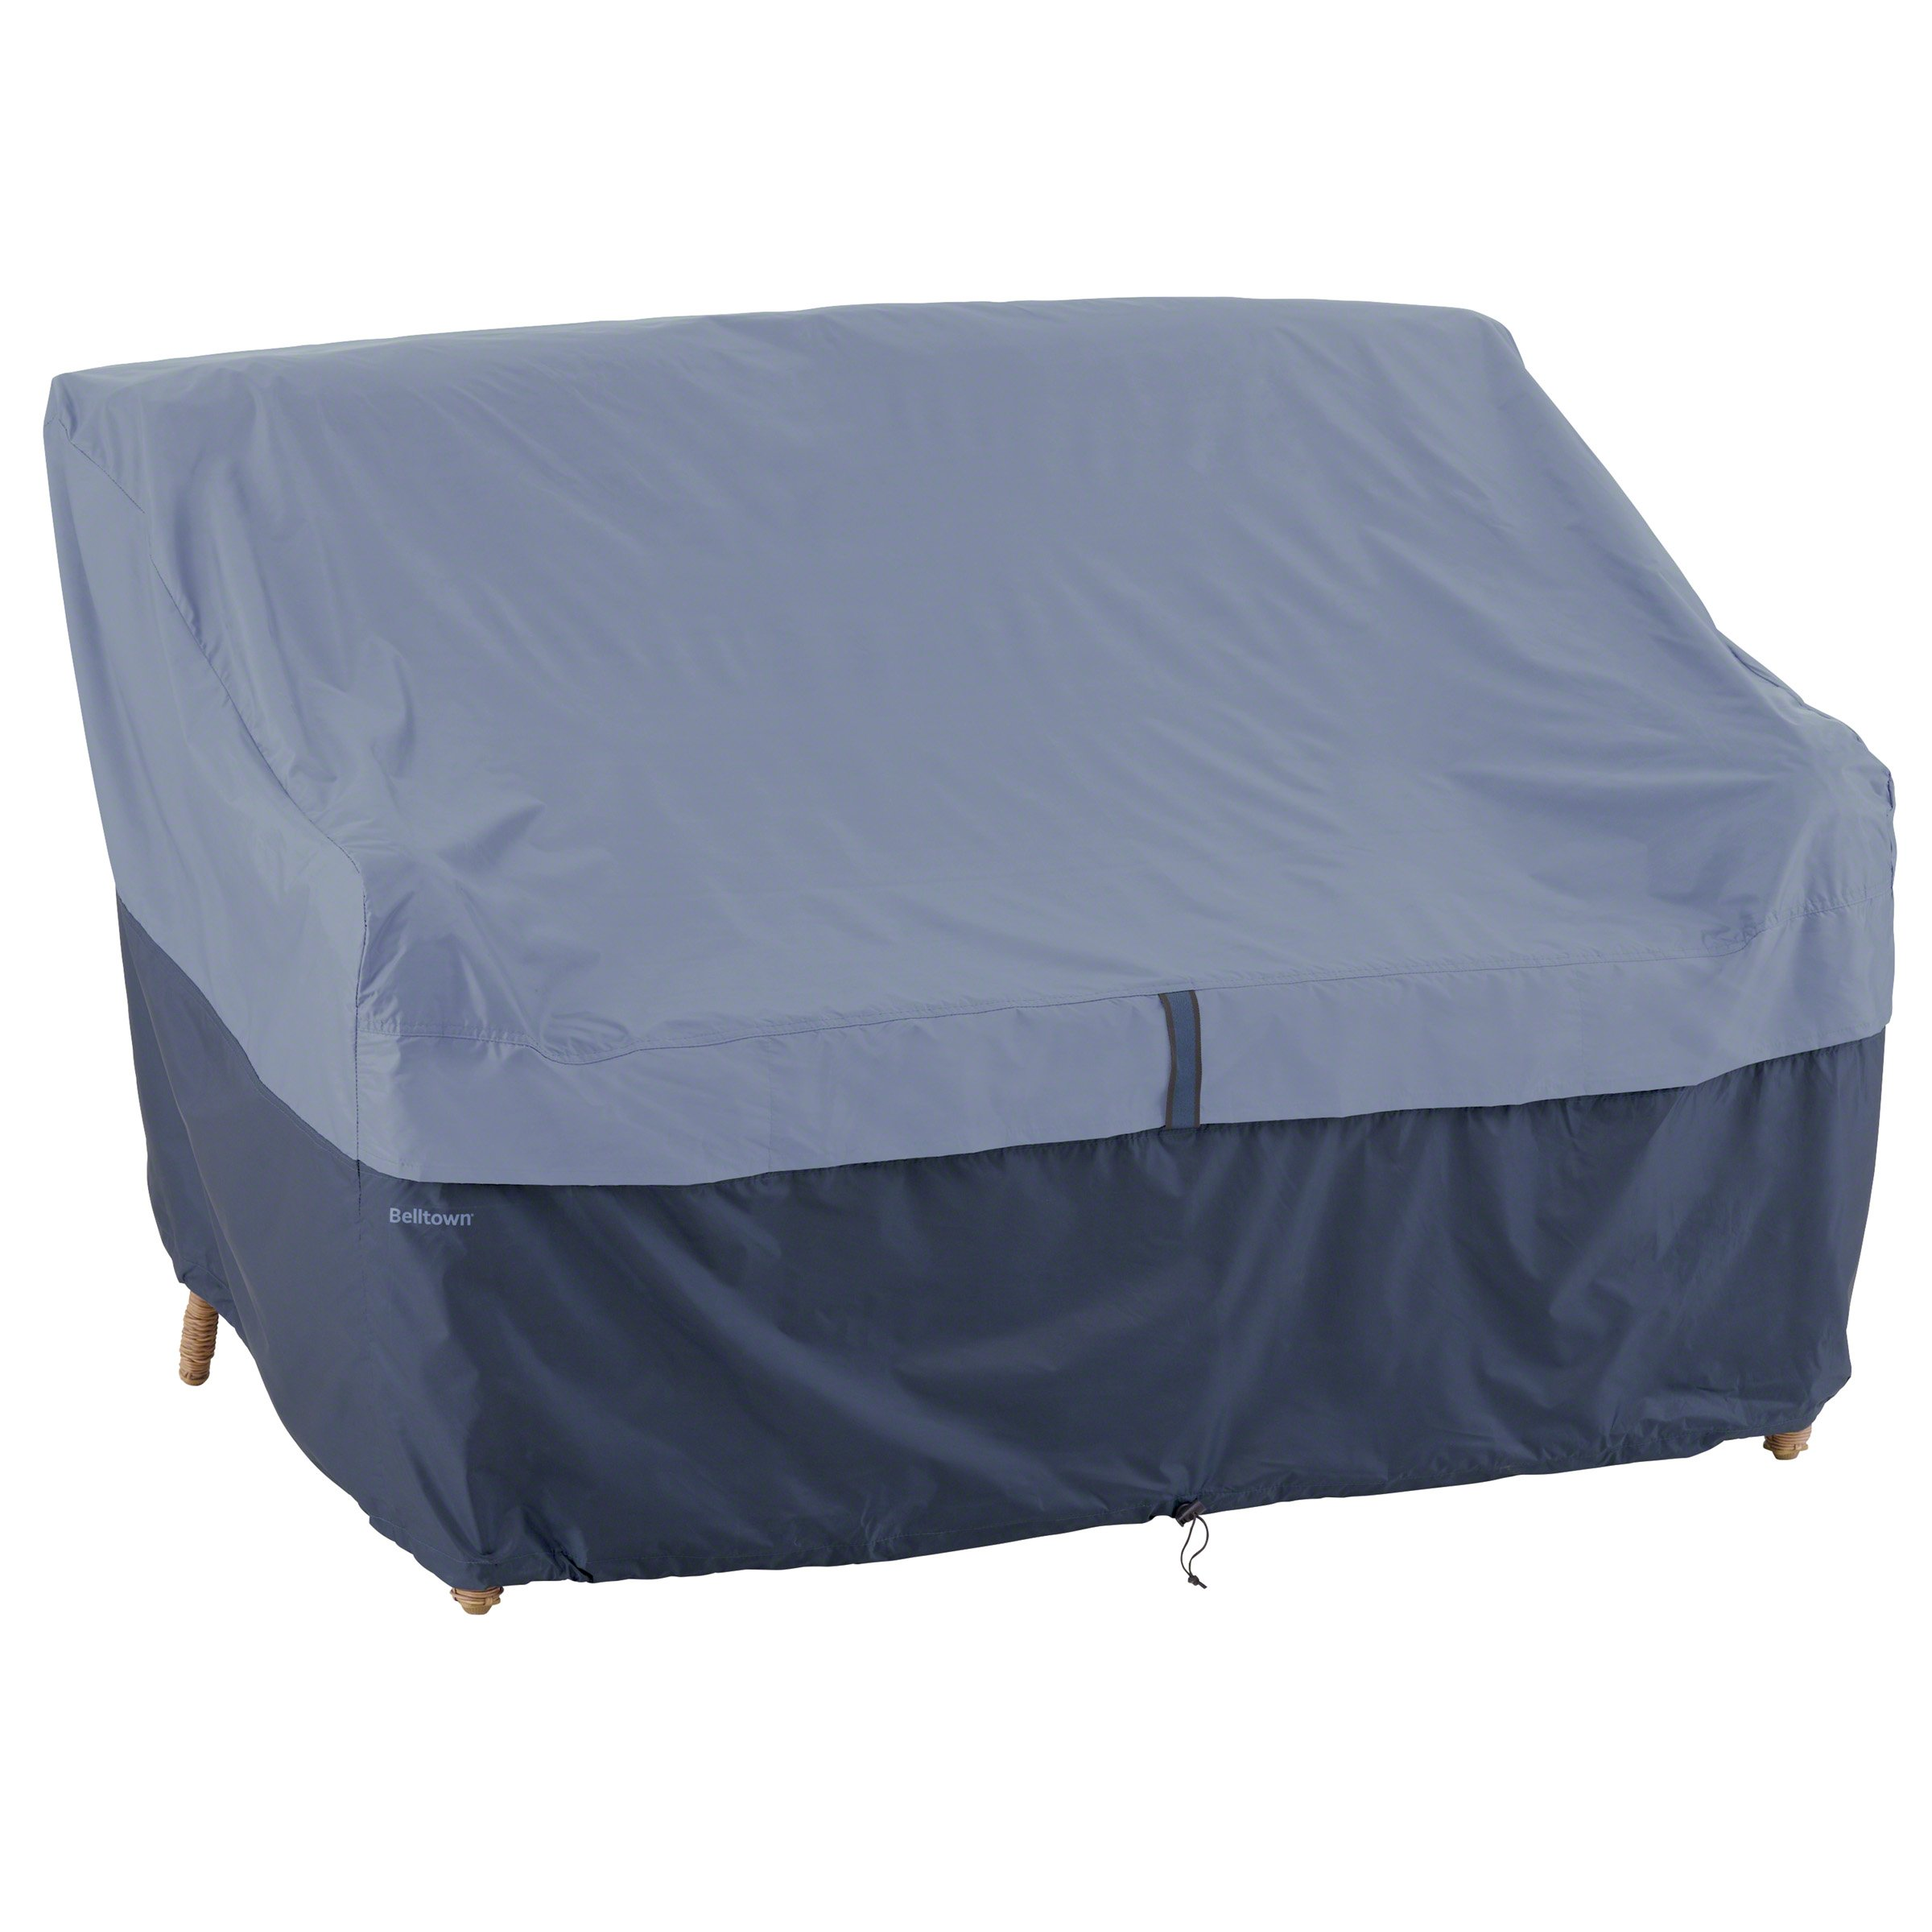 Classic Accessories 55-286-015501-00 Belltown Outdoor Patio Sofa/Loveseat Cover, Blue, Small by Classic Accessories (Image #1)